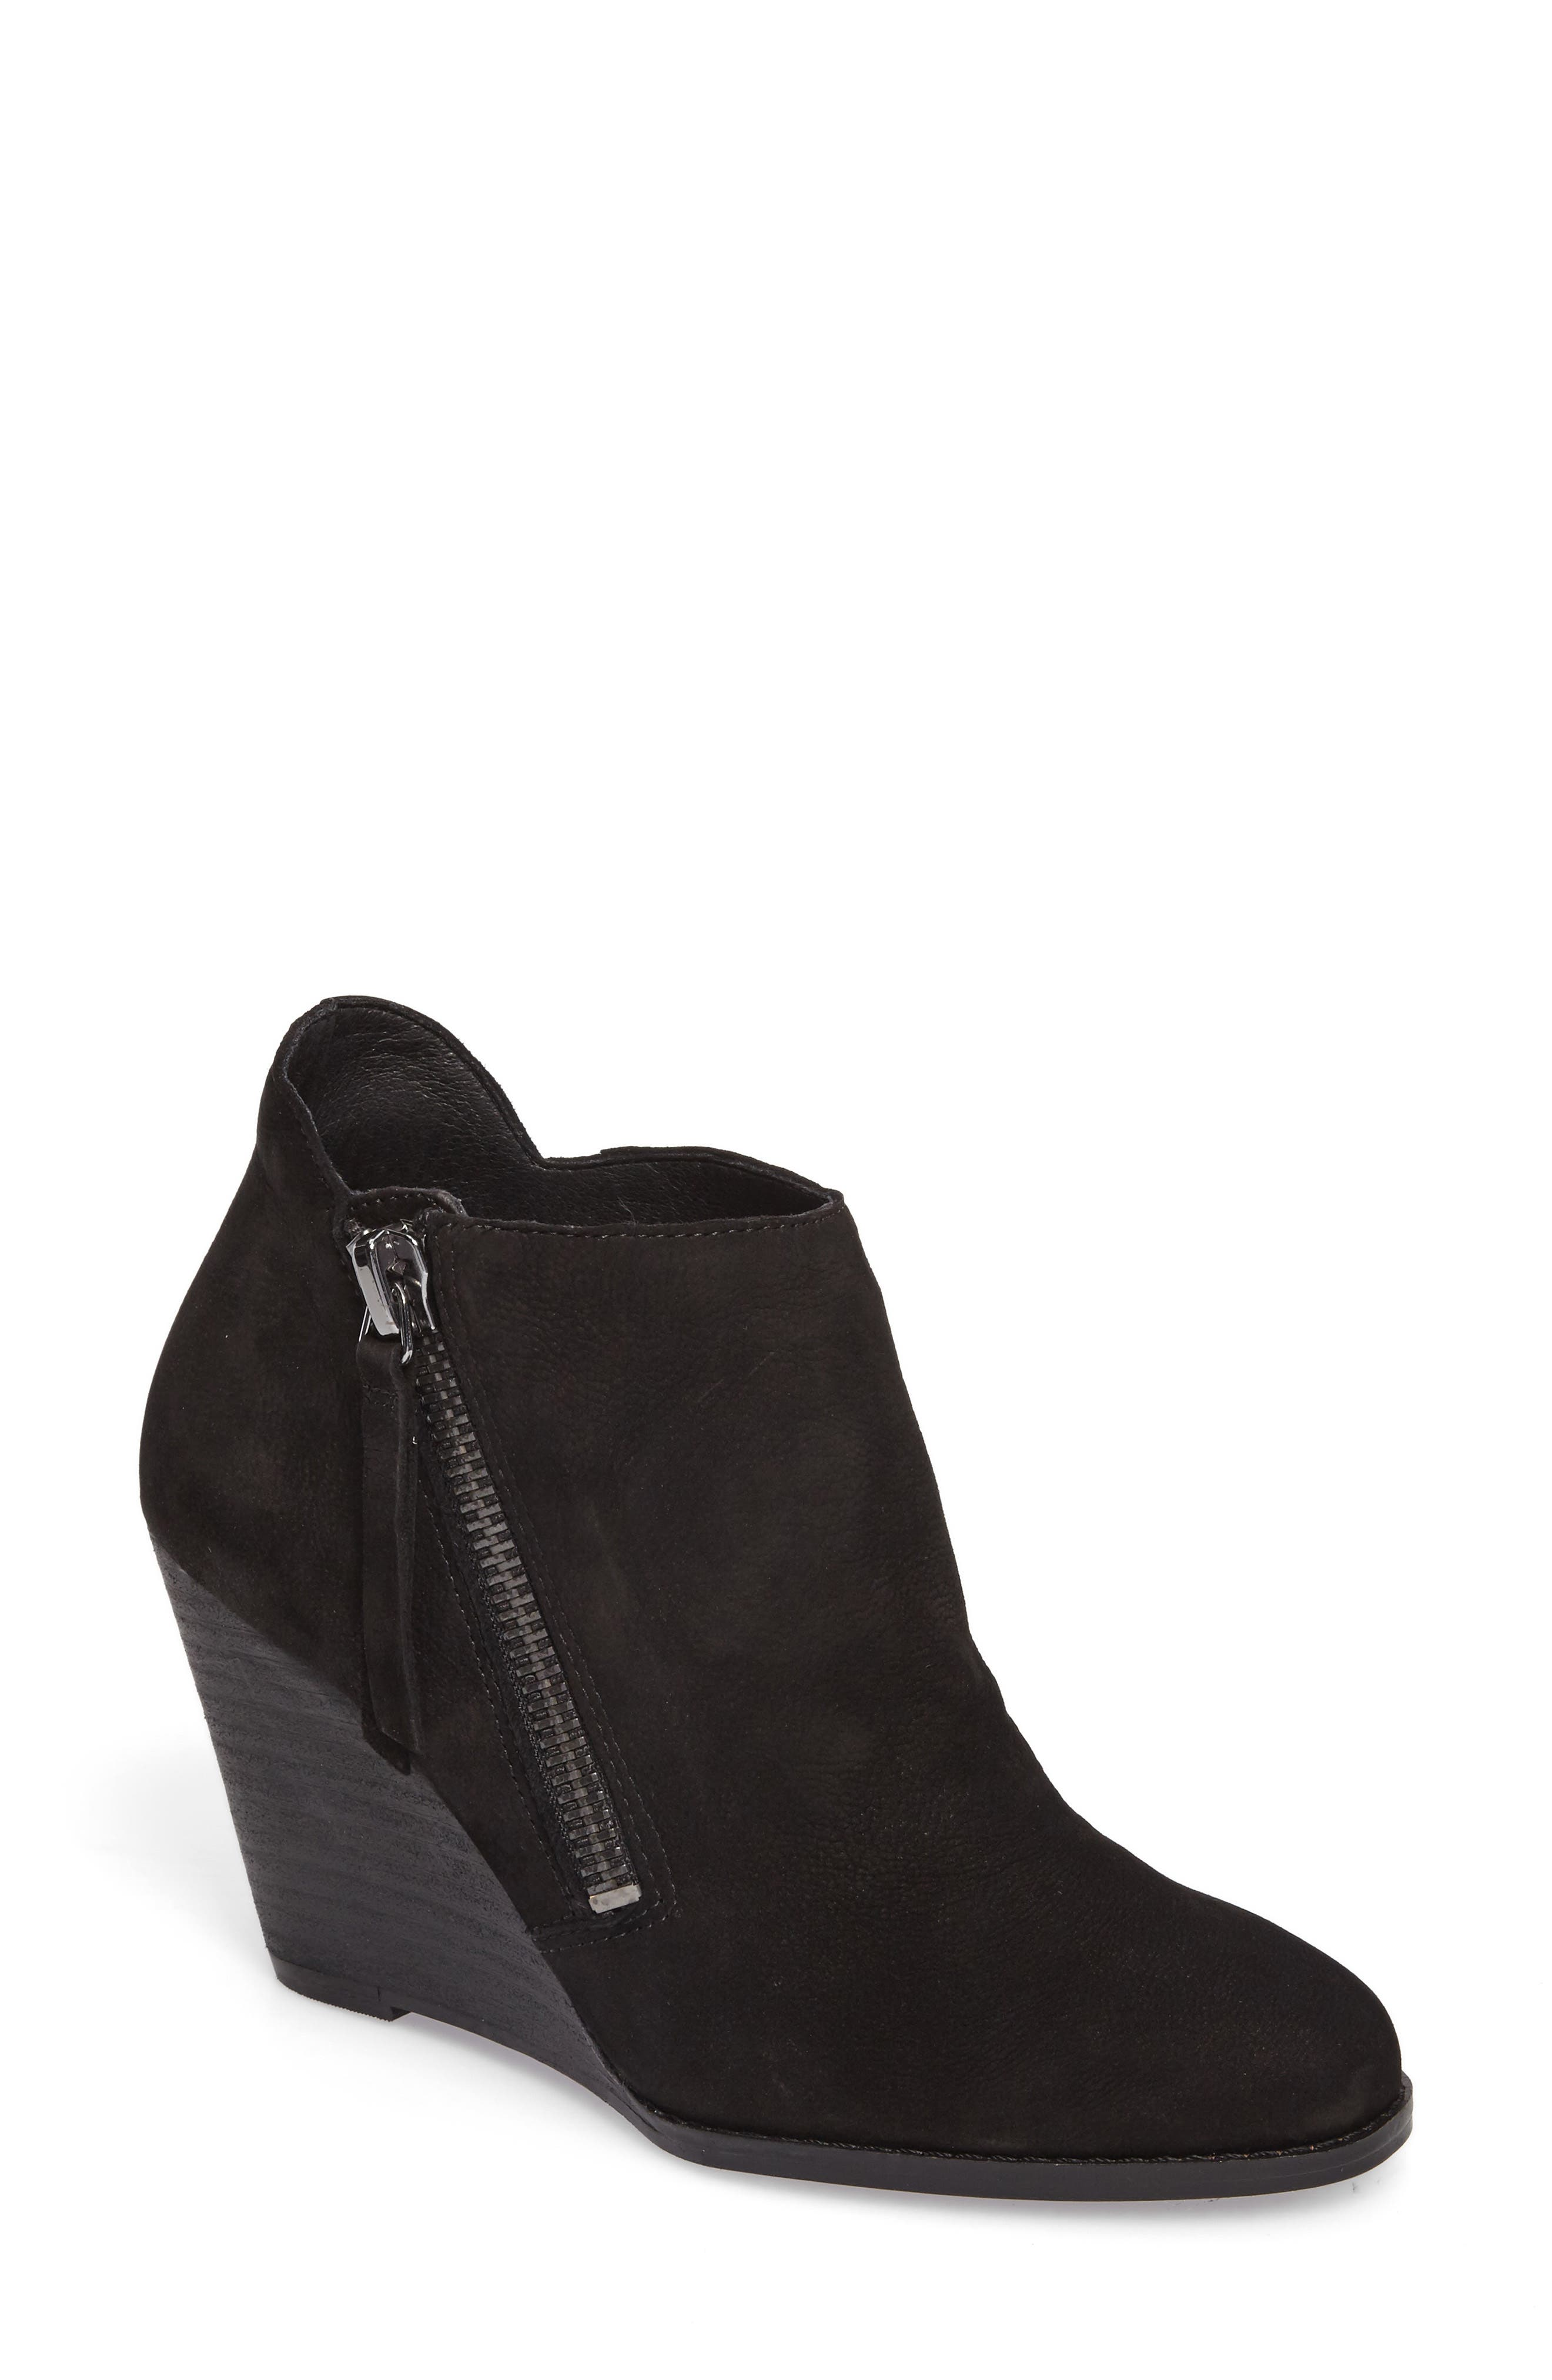 Carnivela Wedge Bootie,                             Main thumbnail 1, color,                             001